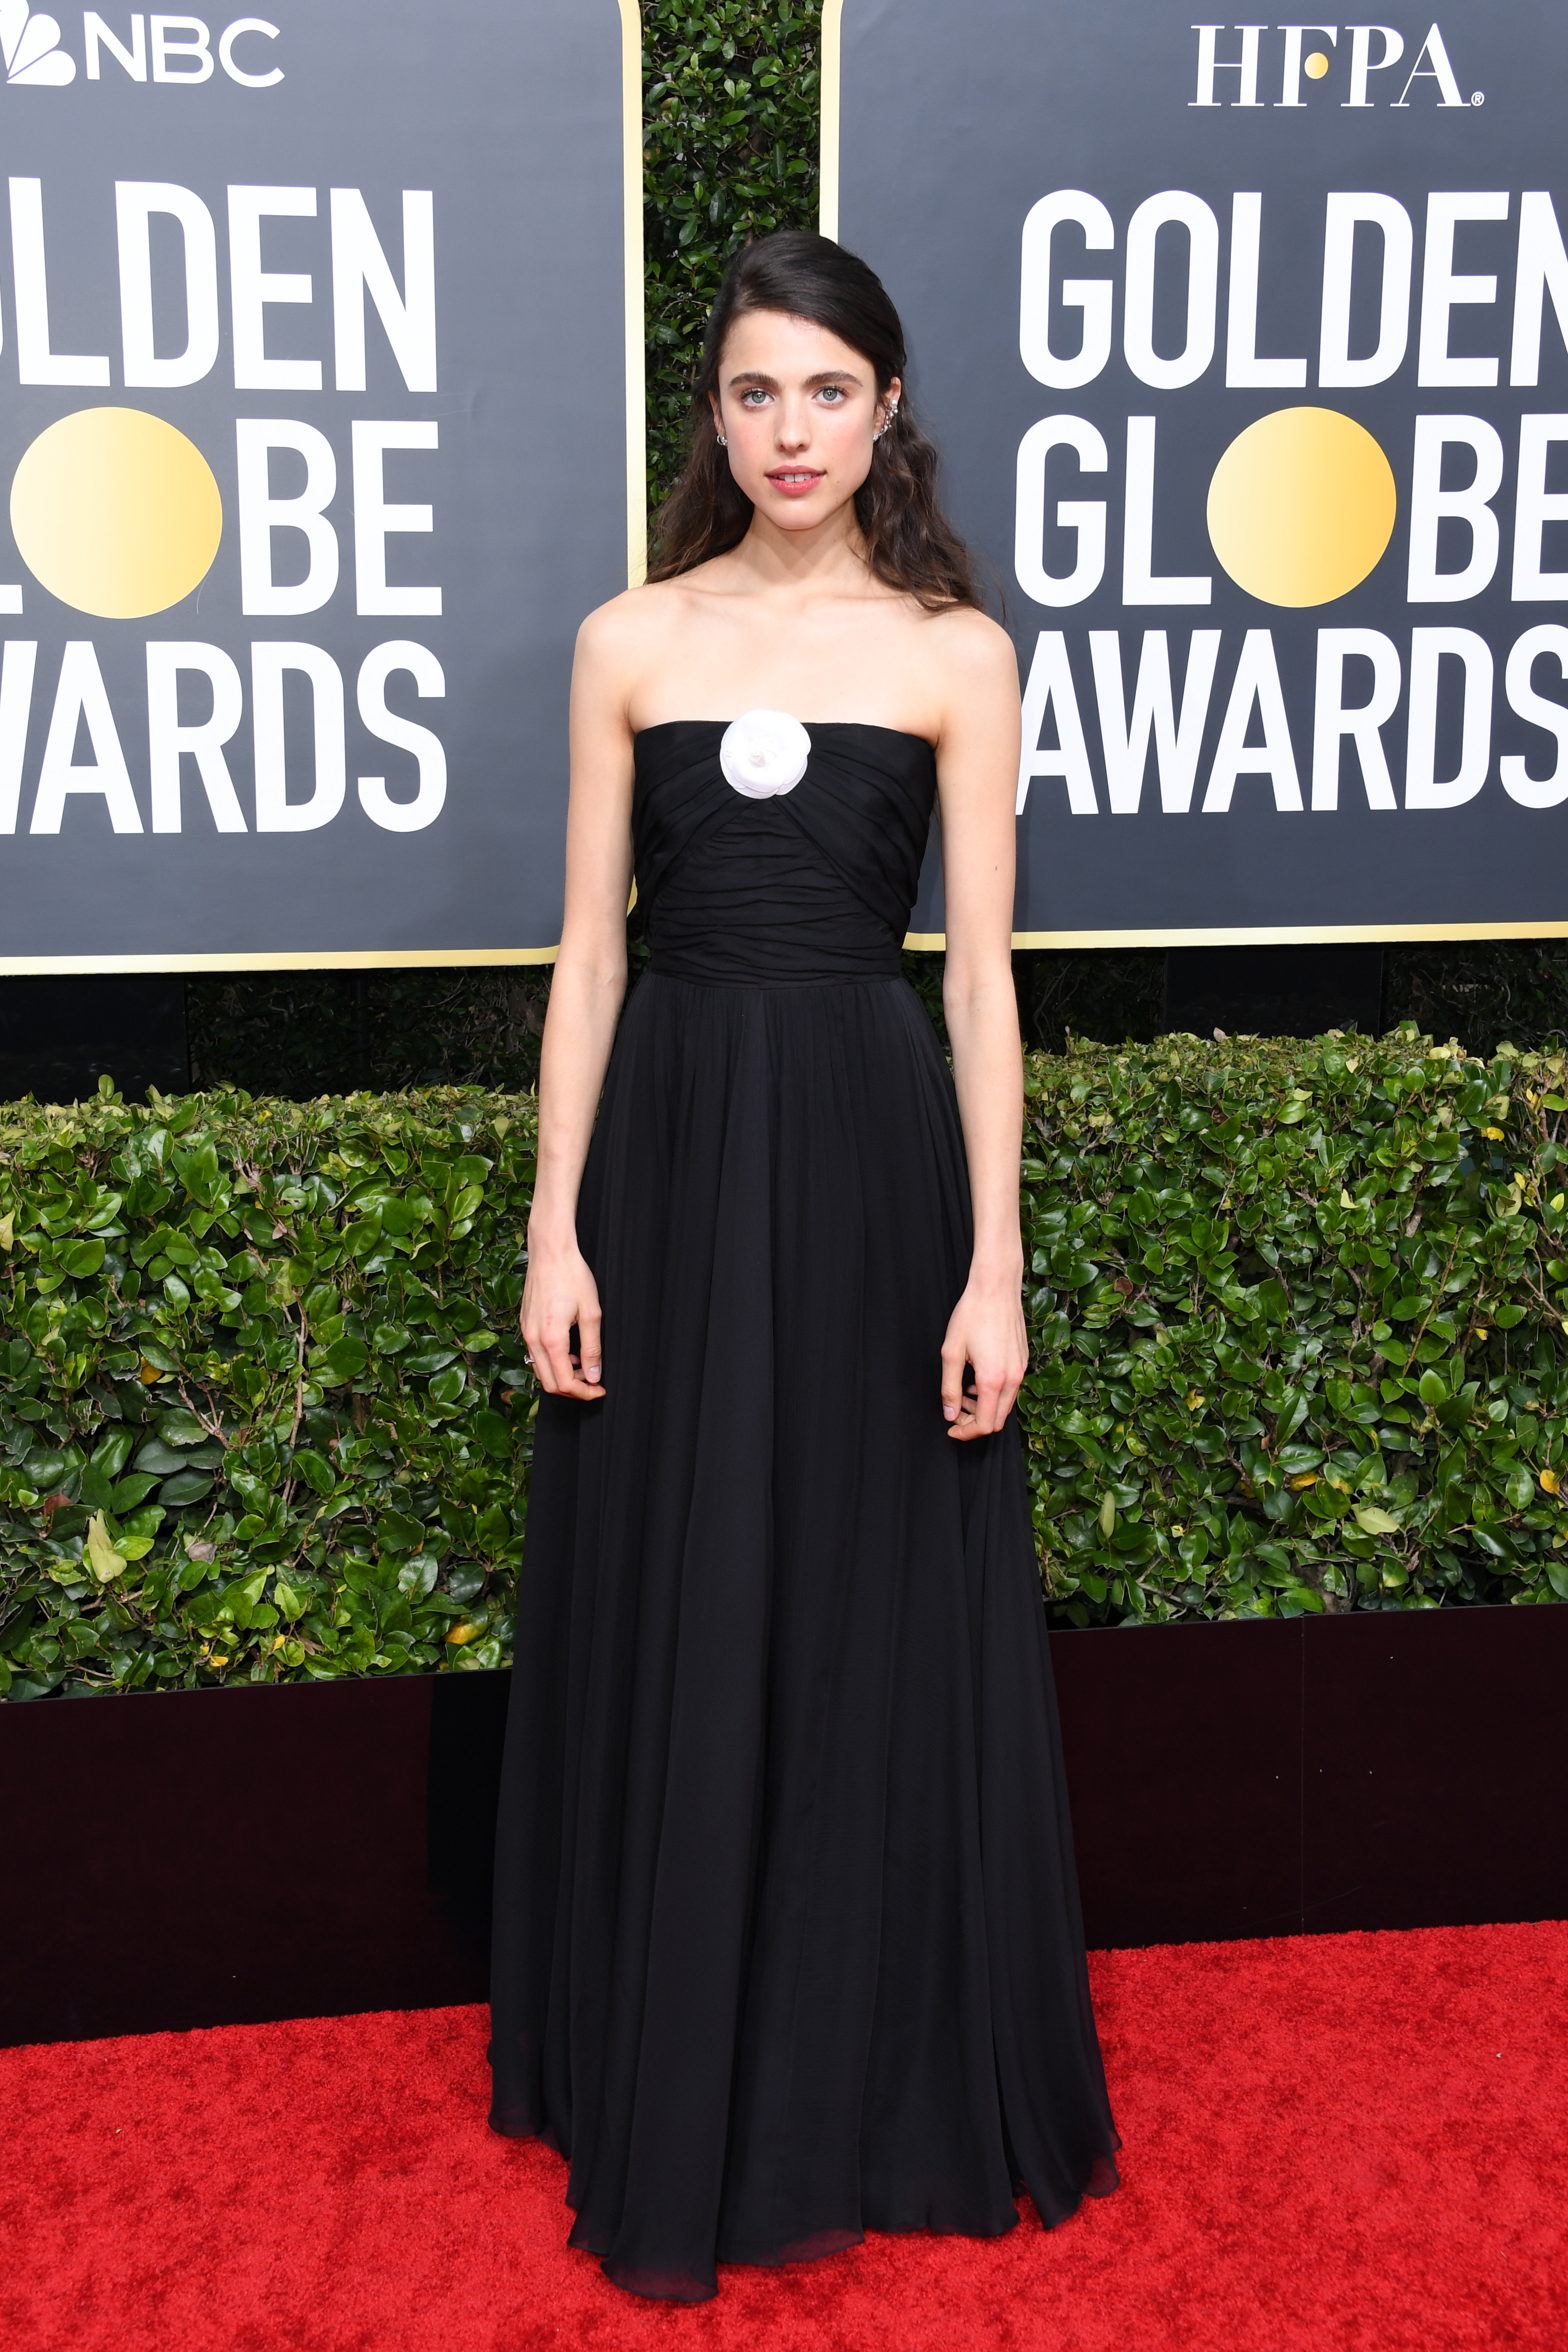 BEVERLY HILLS, CALIFORNIA - JANUARY 05: Margaret Qualley attends the 77th Annual Golden Globe Awards at The Beverly Hilton Hotel on January 05, 2020 in Beverly Hills, California. (Photo by Jon Kopaloff/Getty Images)